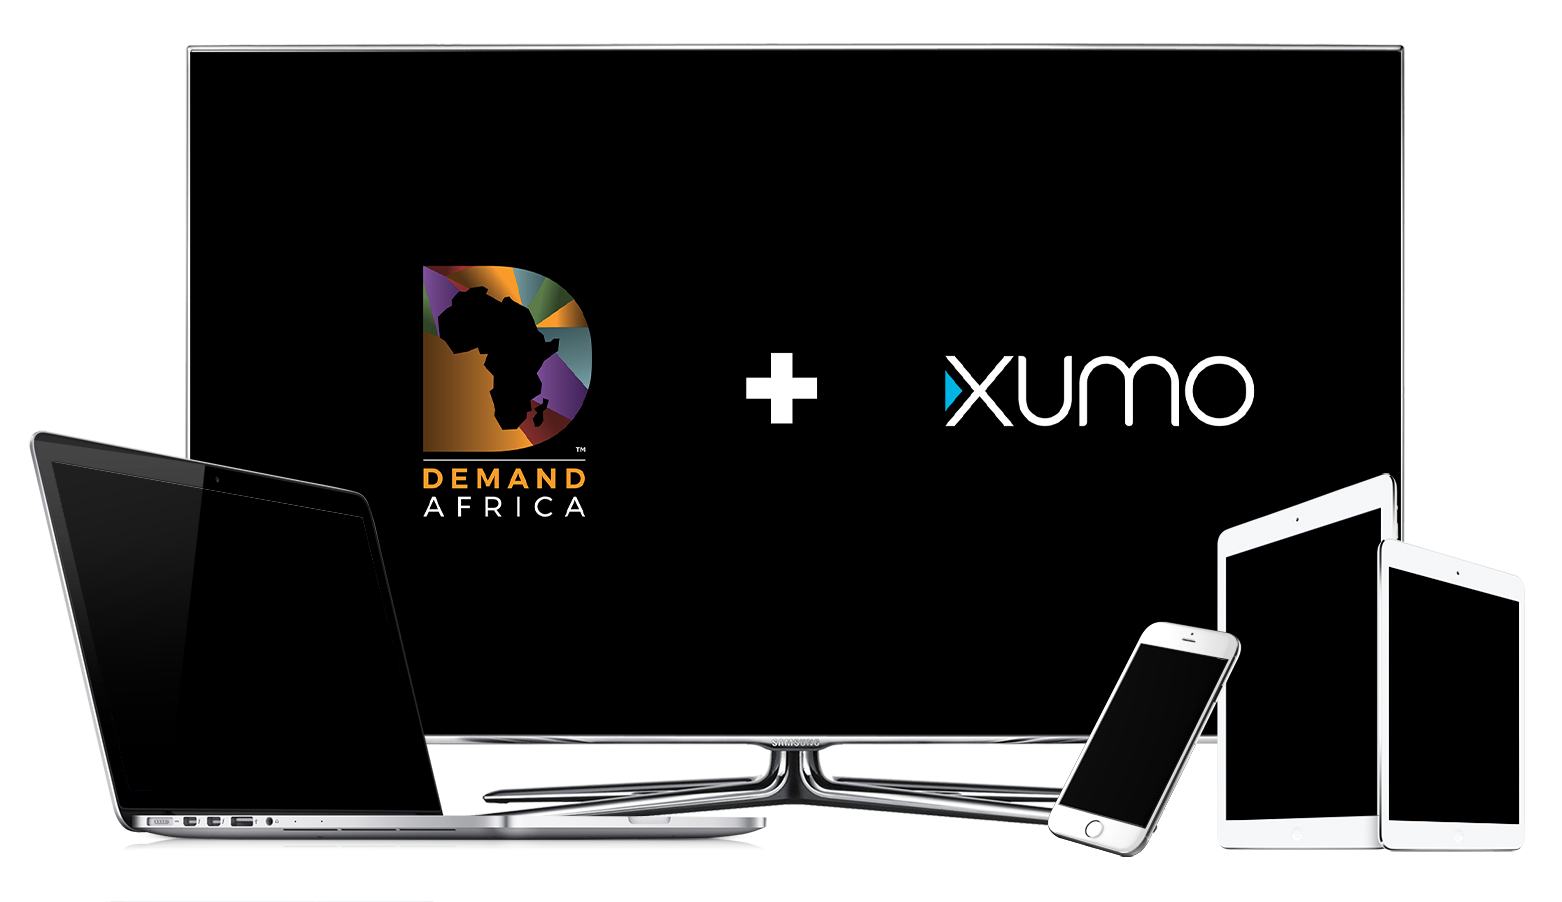 Demand Africa Xumo Devices